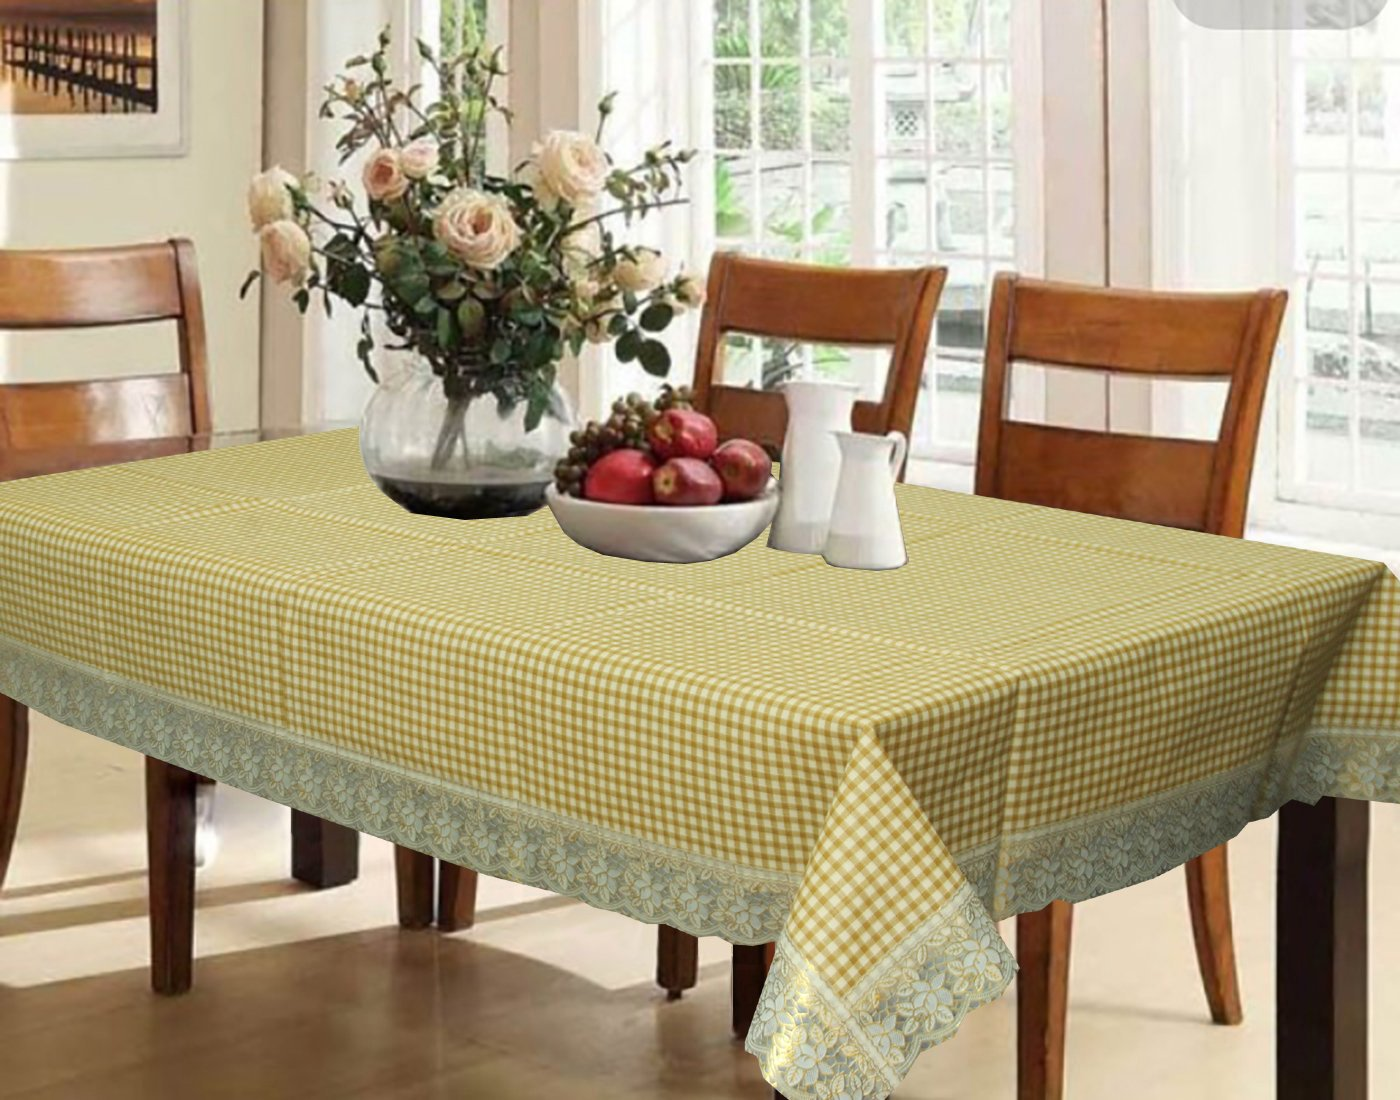 Kuber Industries Light Brown Checkered Design Waterproof Dining Table Cover 6 Seater (6090 inches)